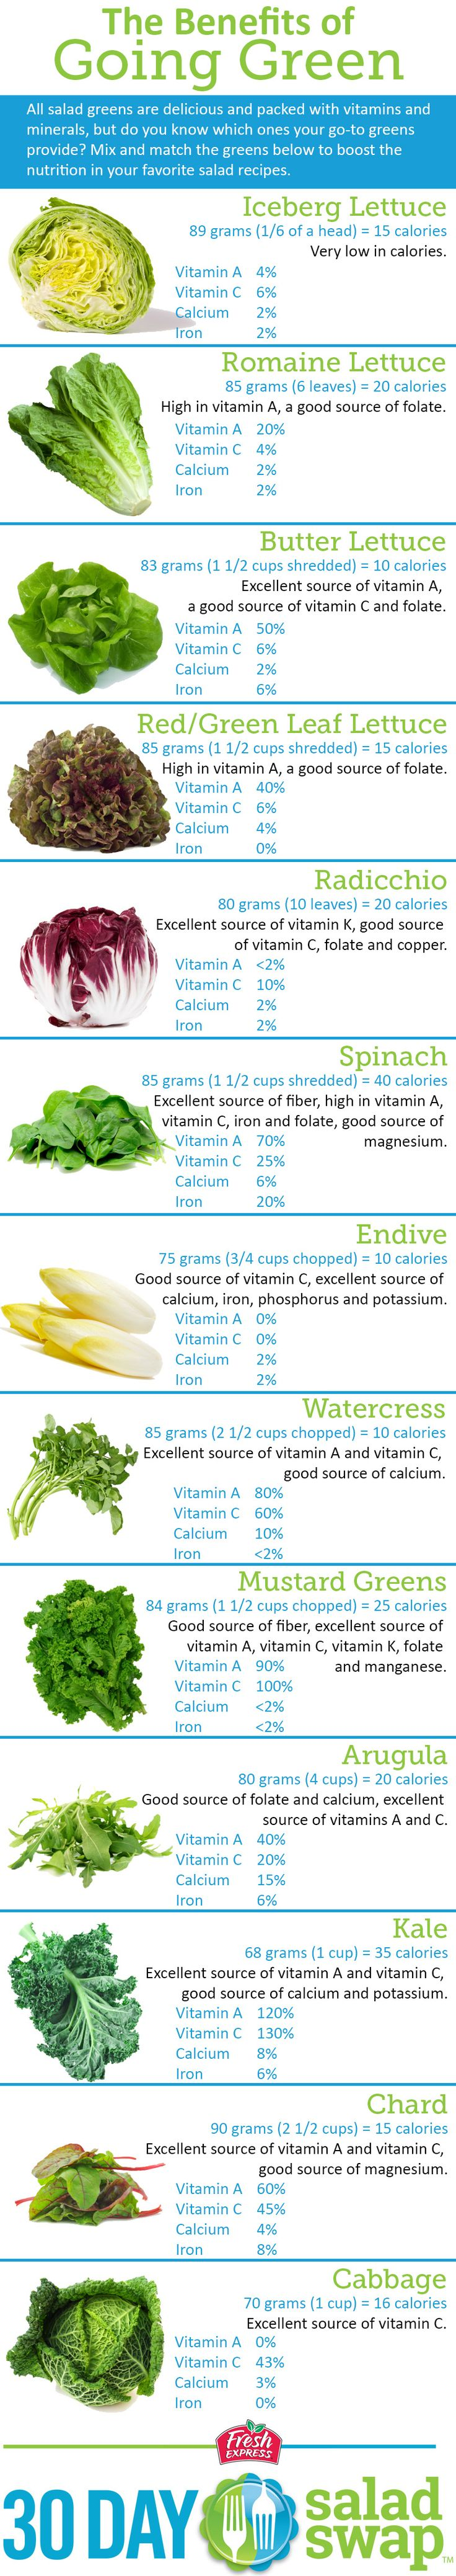 The Benefits of Going Green. Learn about the health benefits of various greens. #saladswap #FreshExpress -  - Great time to start Alkaline Lifestyle - Make a lifestyle change today and start feeling and looking better